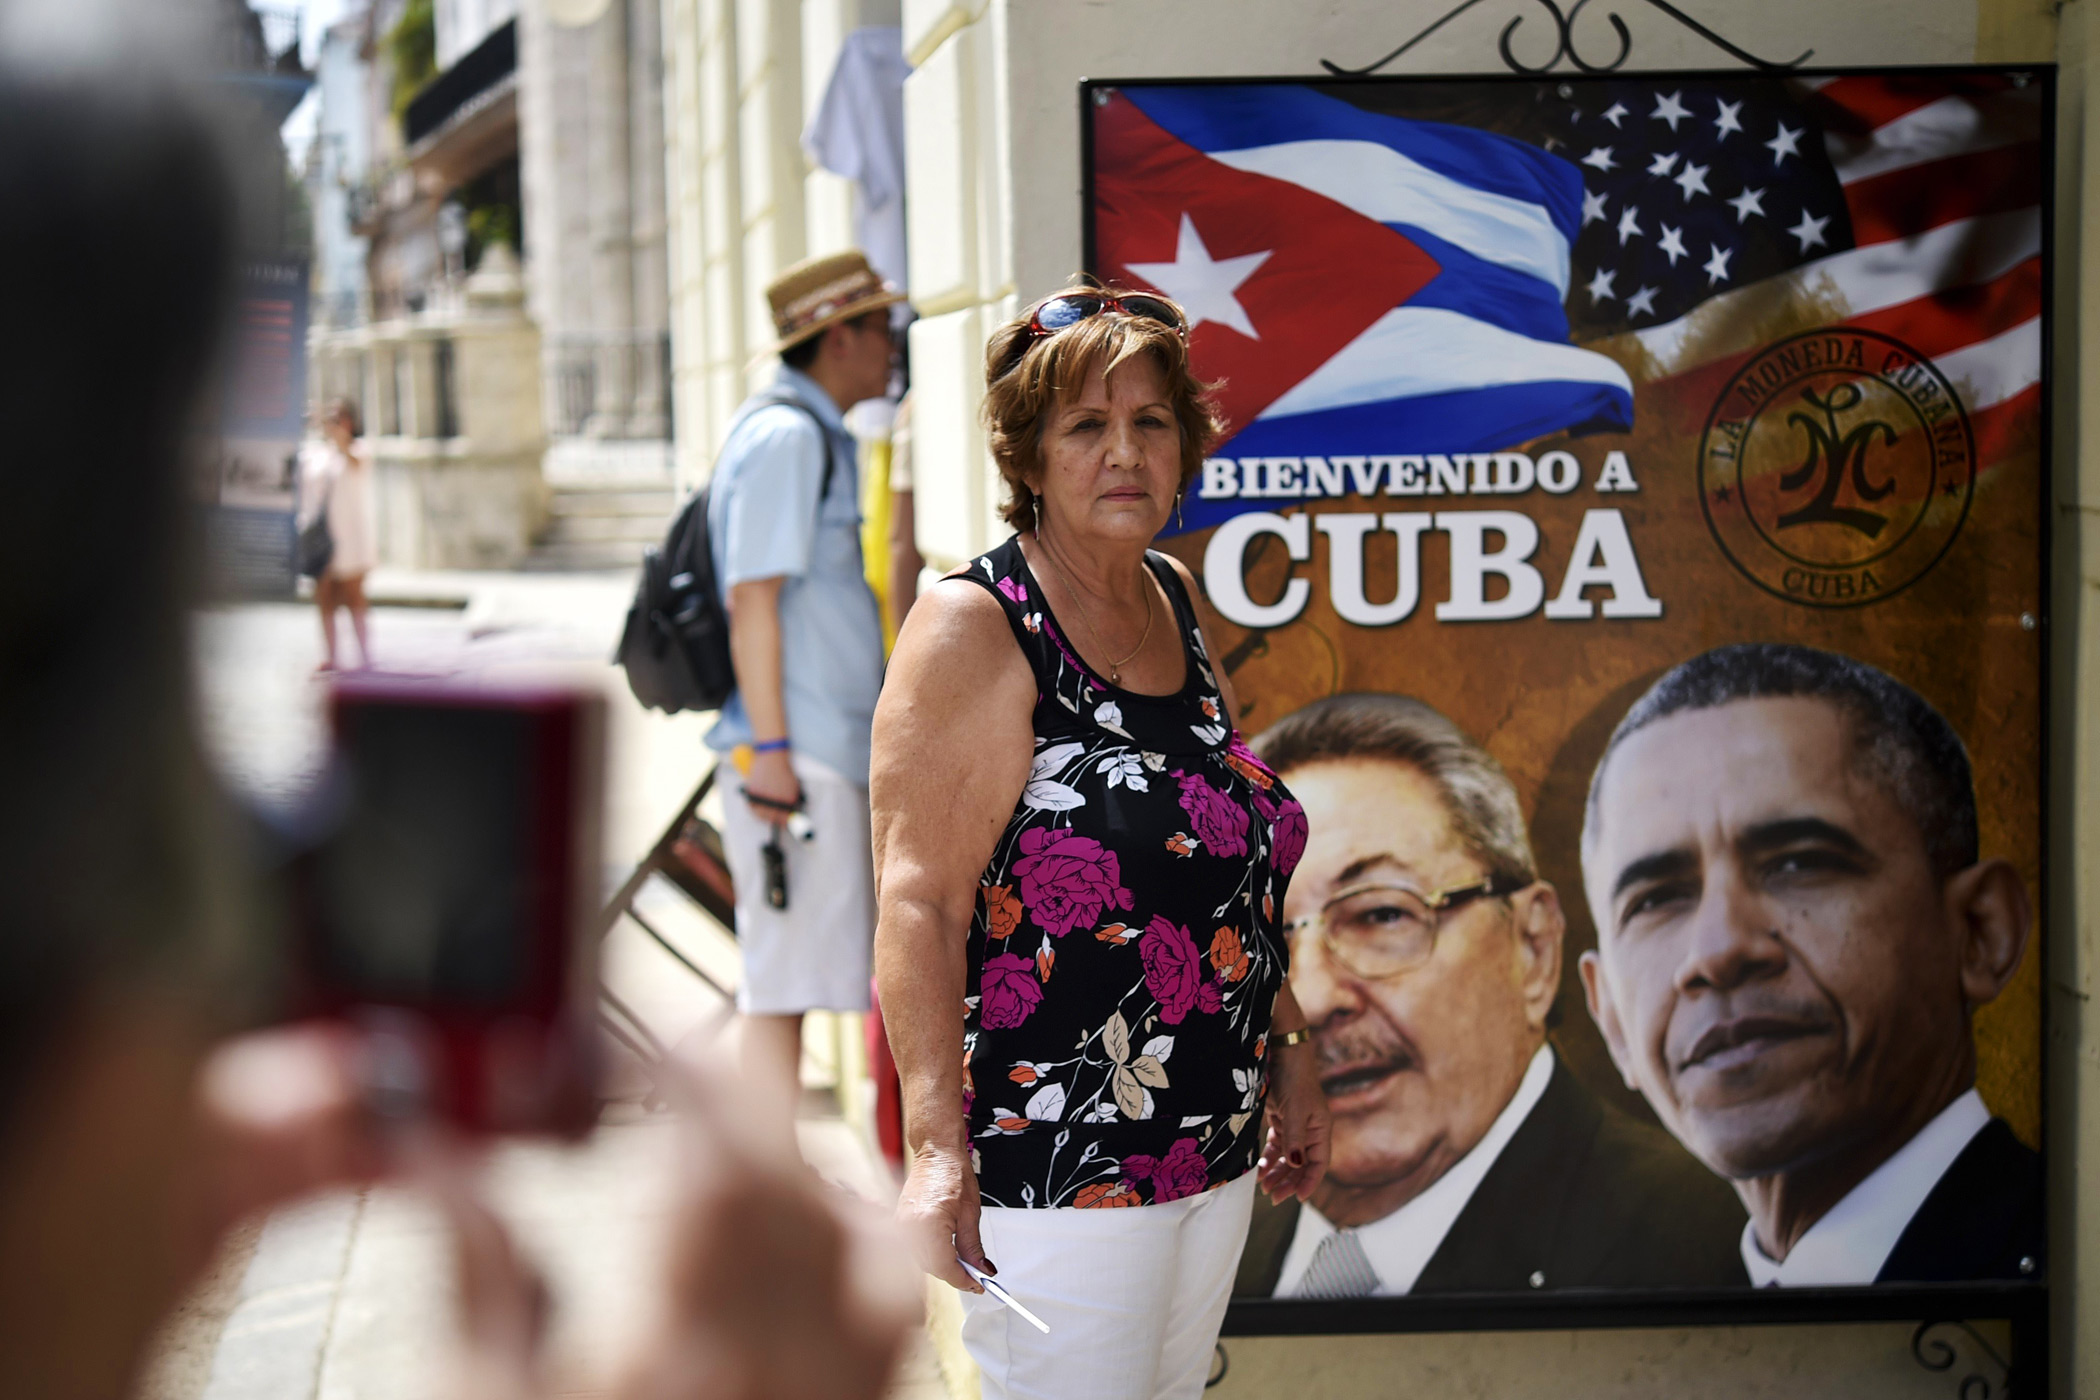 A Cuban woman poses for a picture with a sign displaying images of Cuban and U.S. Presidents Raul Castro and Barack Obama in Havana on March 19, 2016.